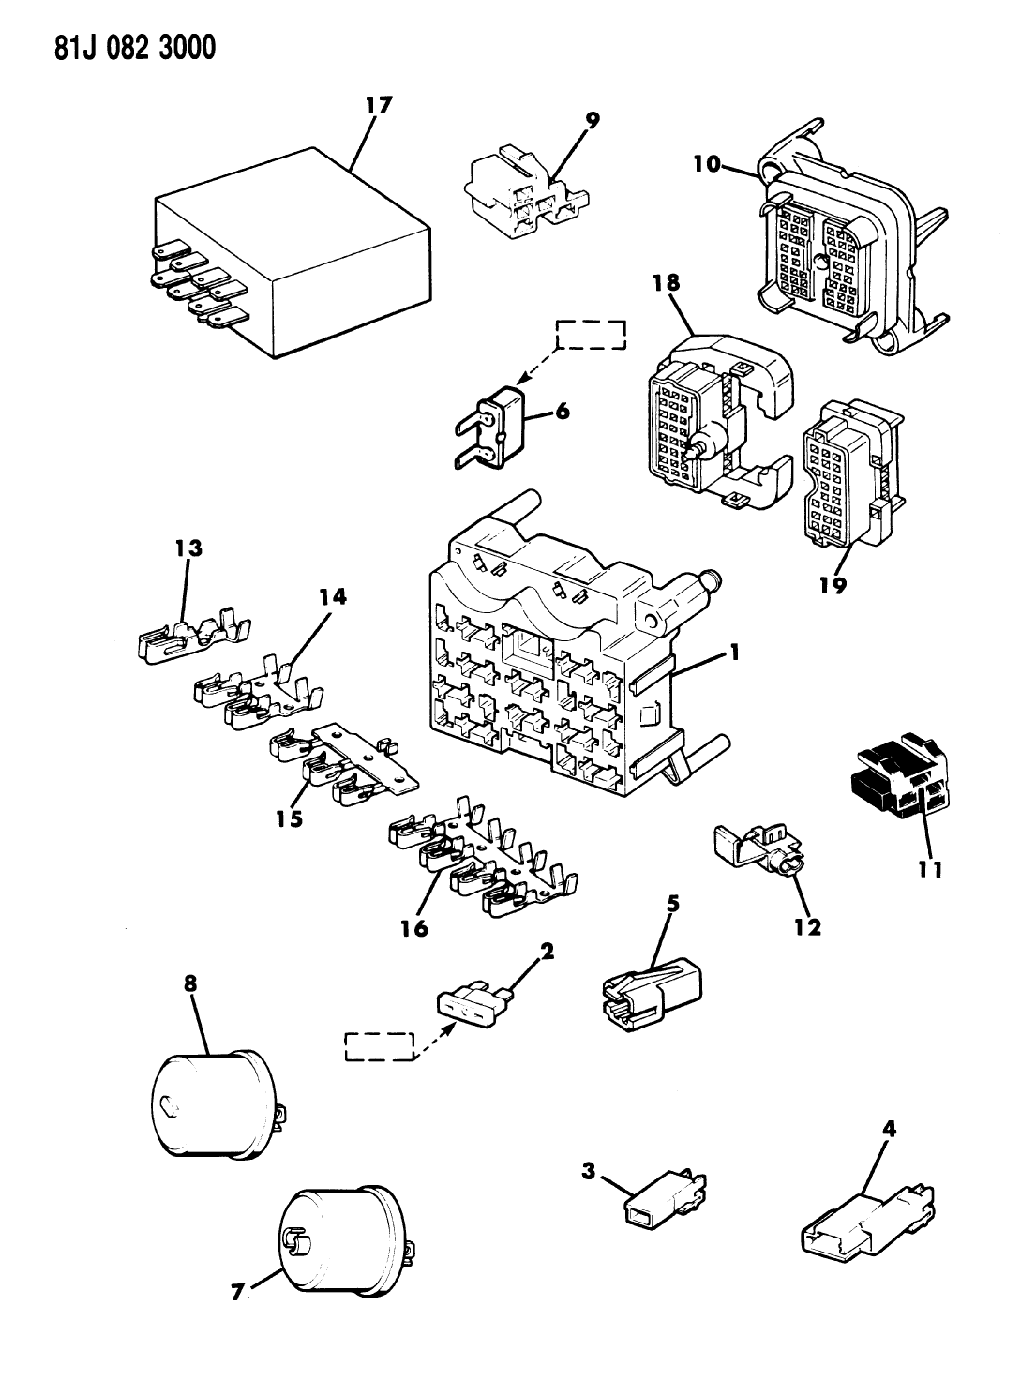 84 Jeep Wagoneer Fuse Box Wiring Library 1990 Grand Diagram 1984 Panel